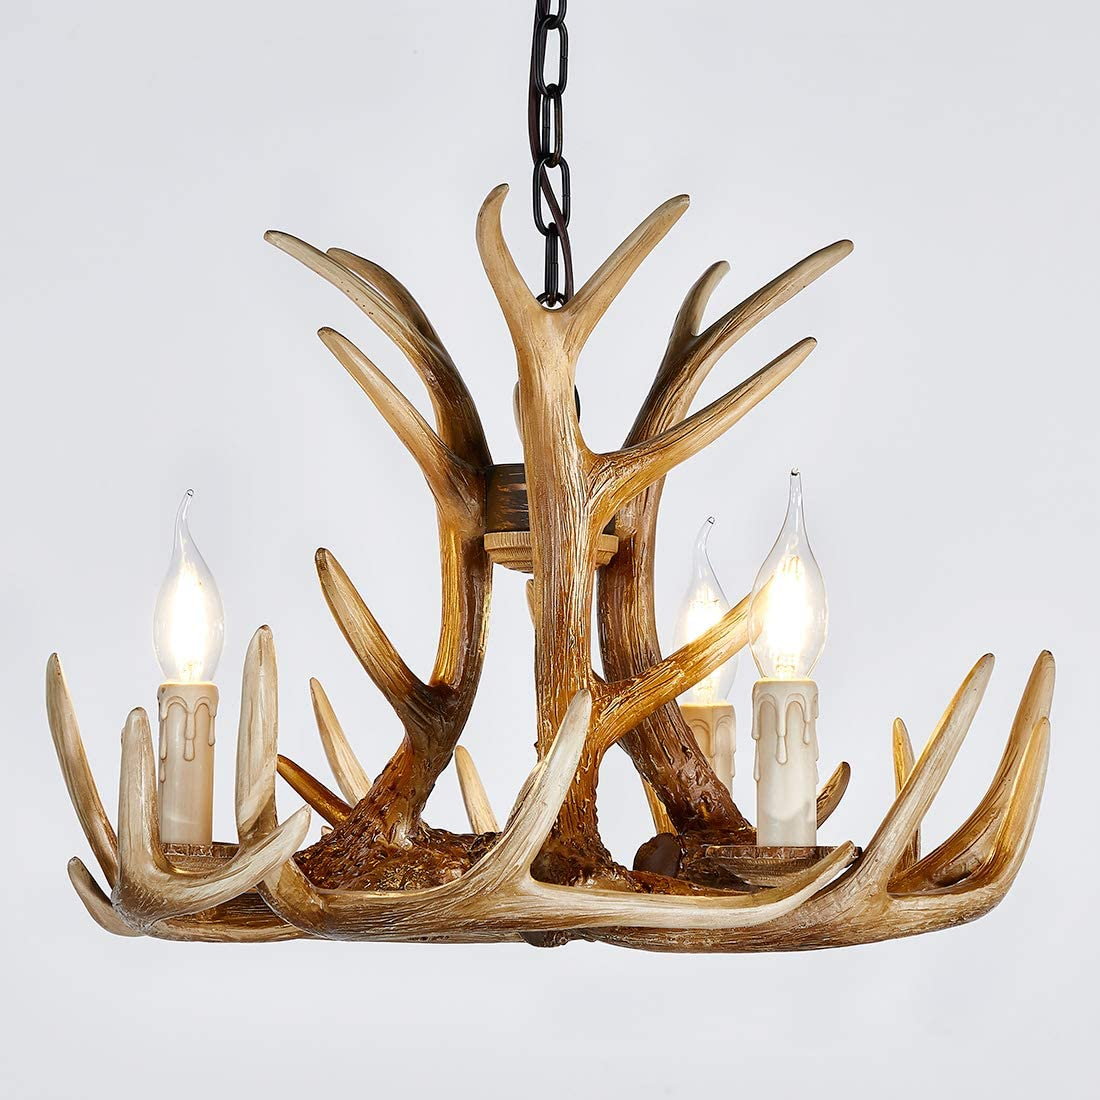 Resin Antler Chandelier 3 Light, Antler Lighting Vintage Style Deer Horn Ceiling Light for Living Room,Bar,Cafe, Dining Room